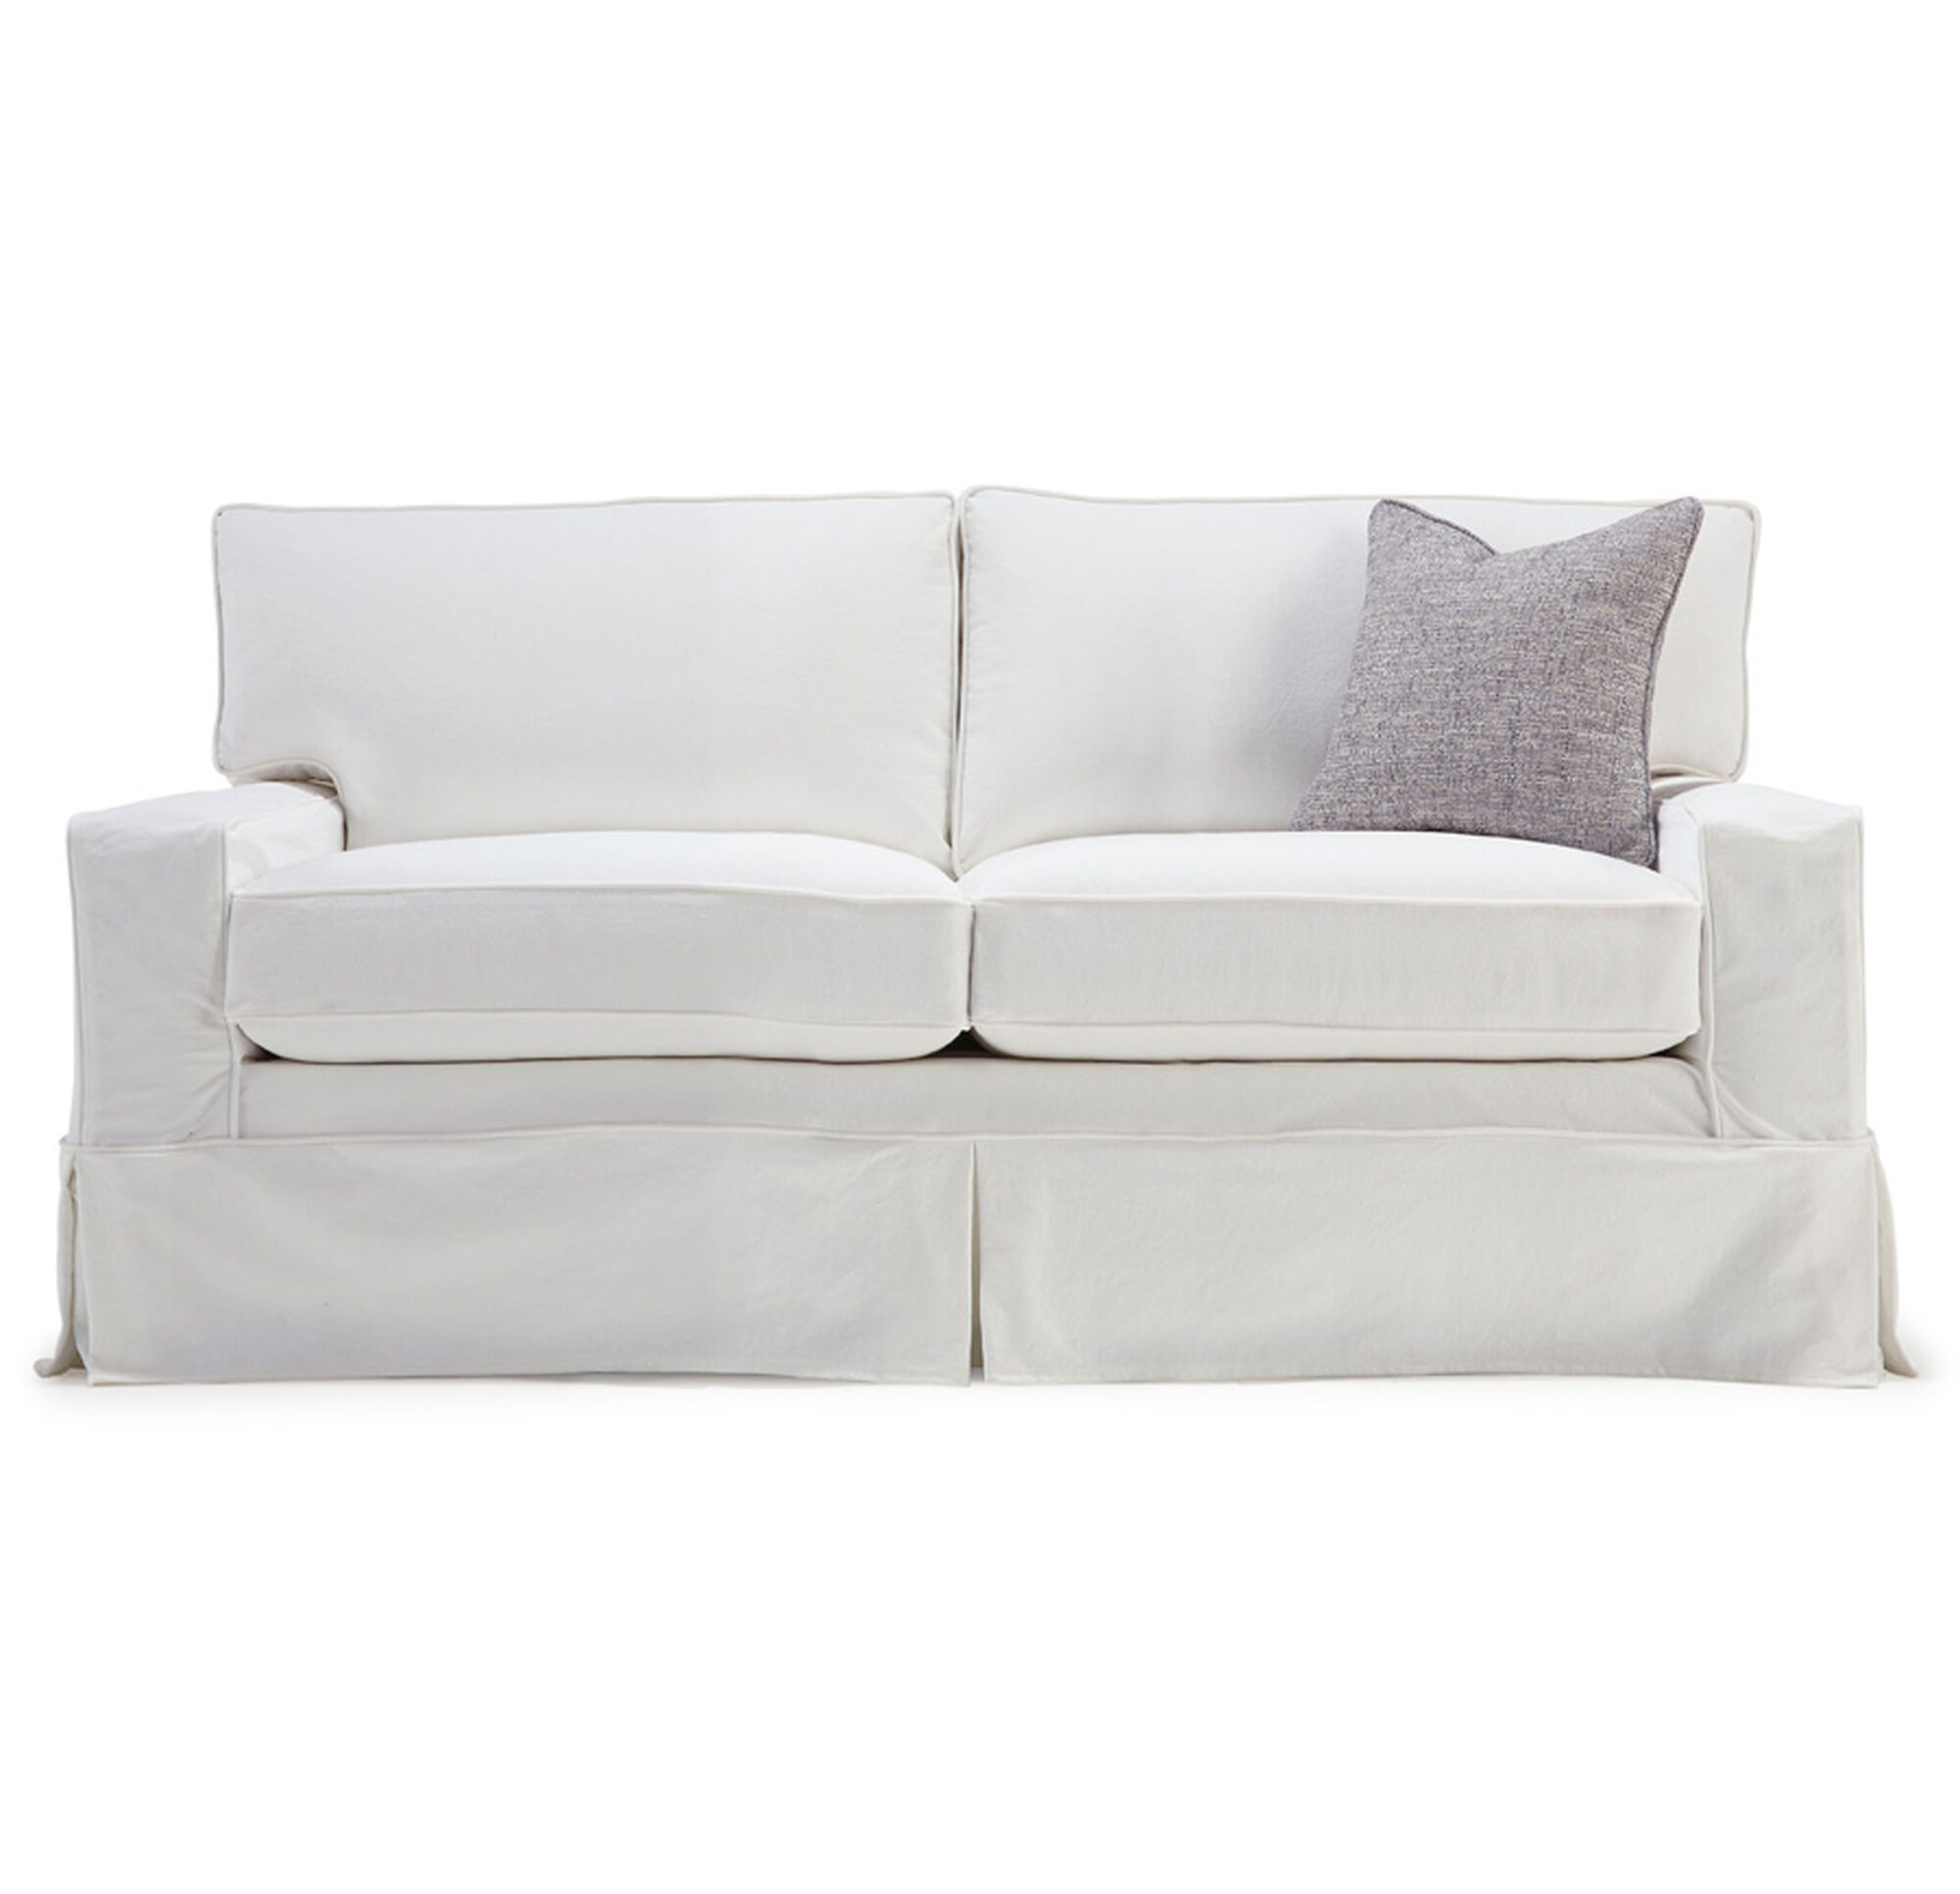 Sofas And Loveseats ~ White Slipcovers For Sofa